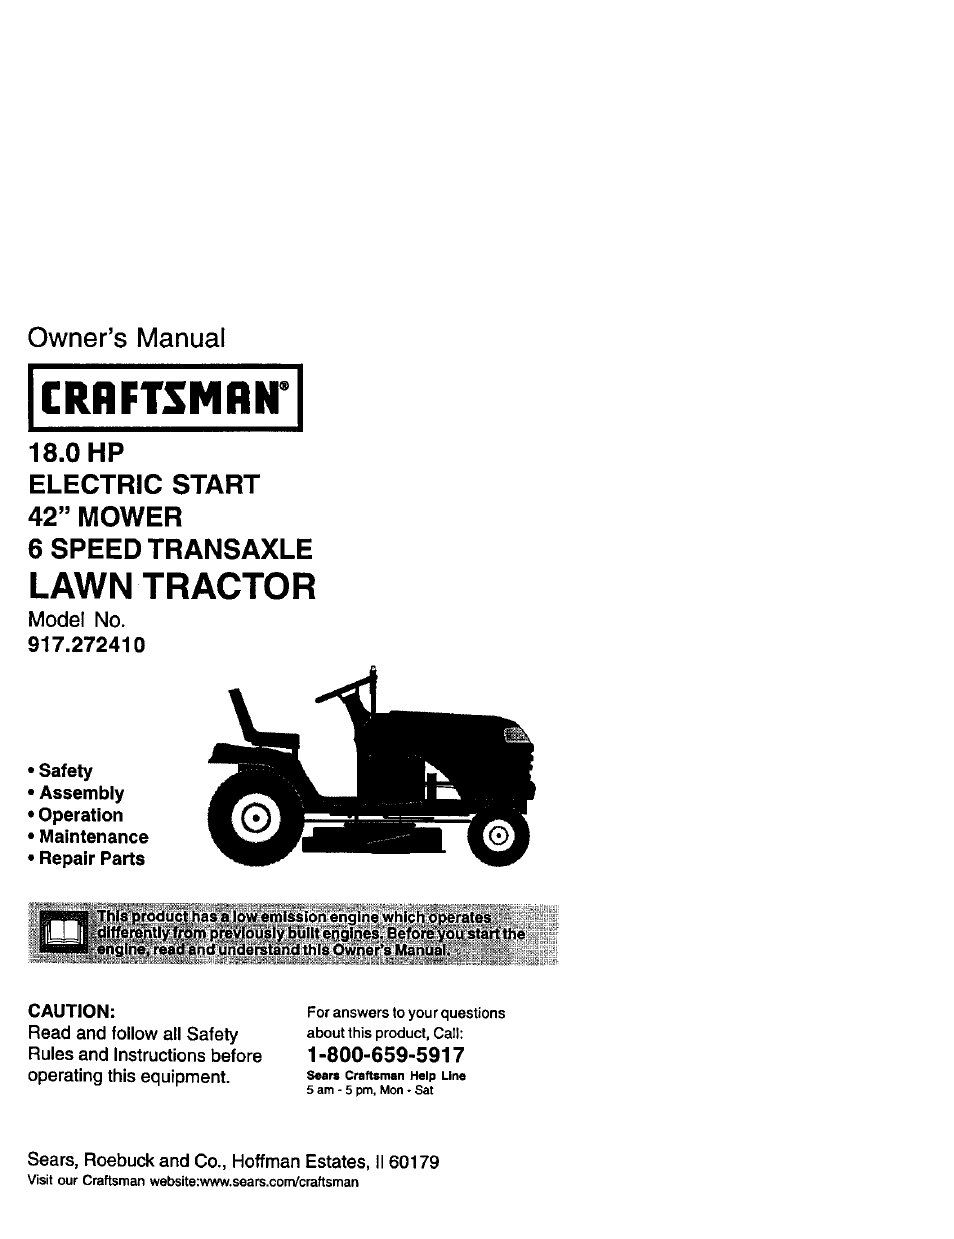 Craftsman 20 Hp Lawn Tractor Wiring Diagram Solutions Garden For Kohler Electrical Problem Repaired You 917 272410 User Manual 60 Pages